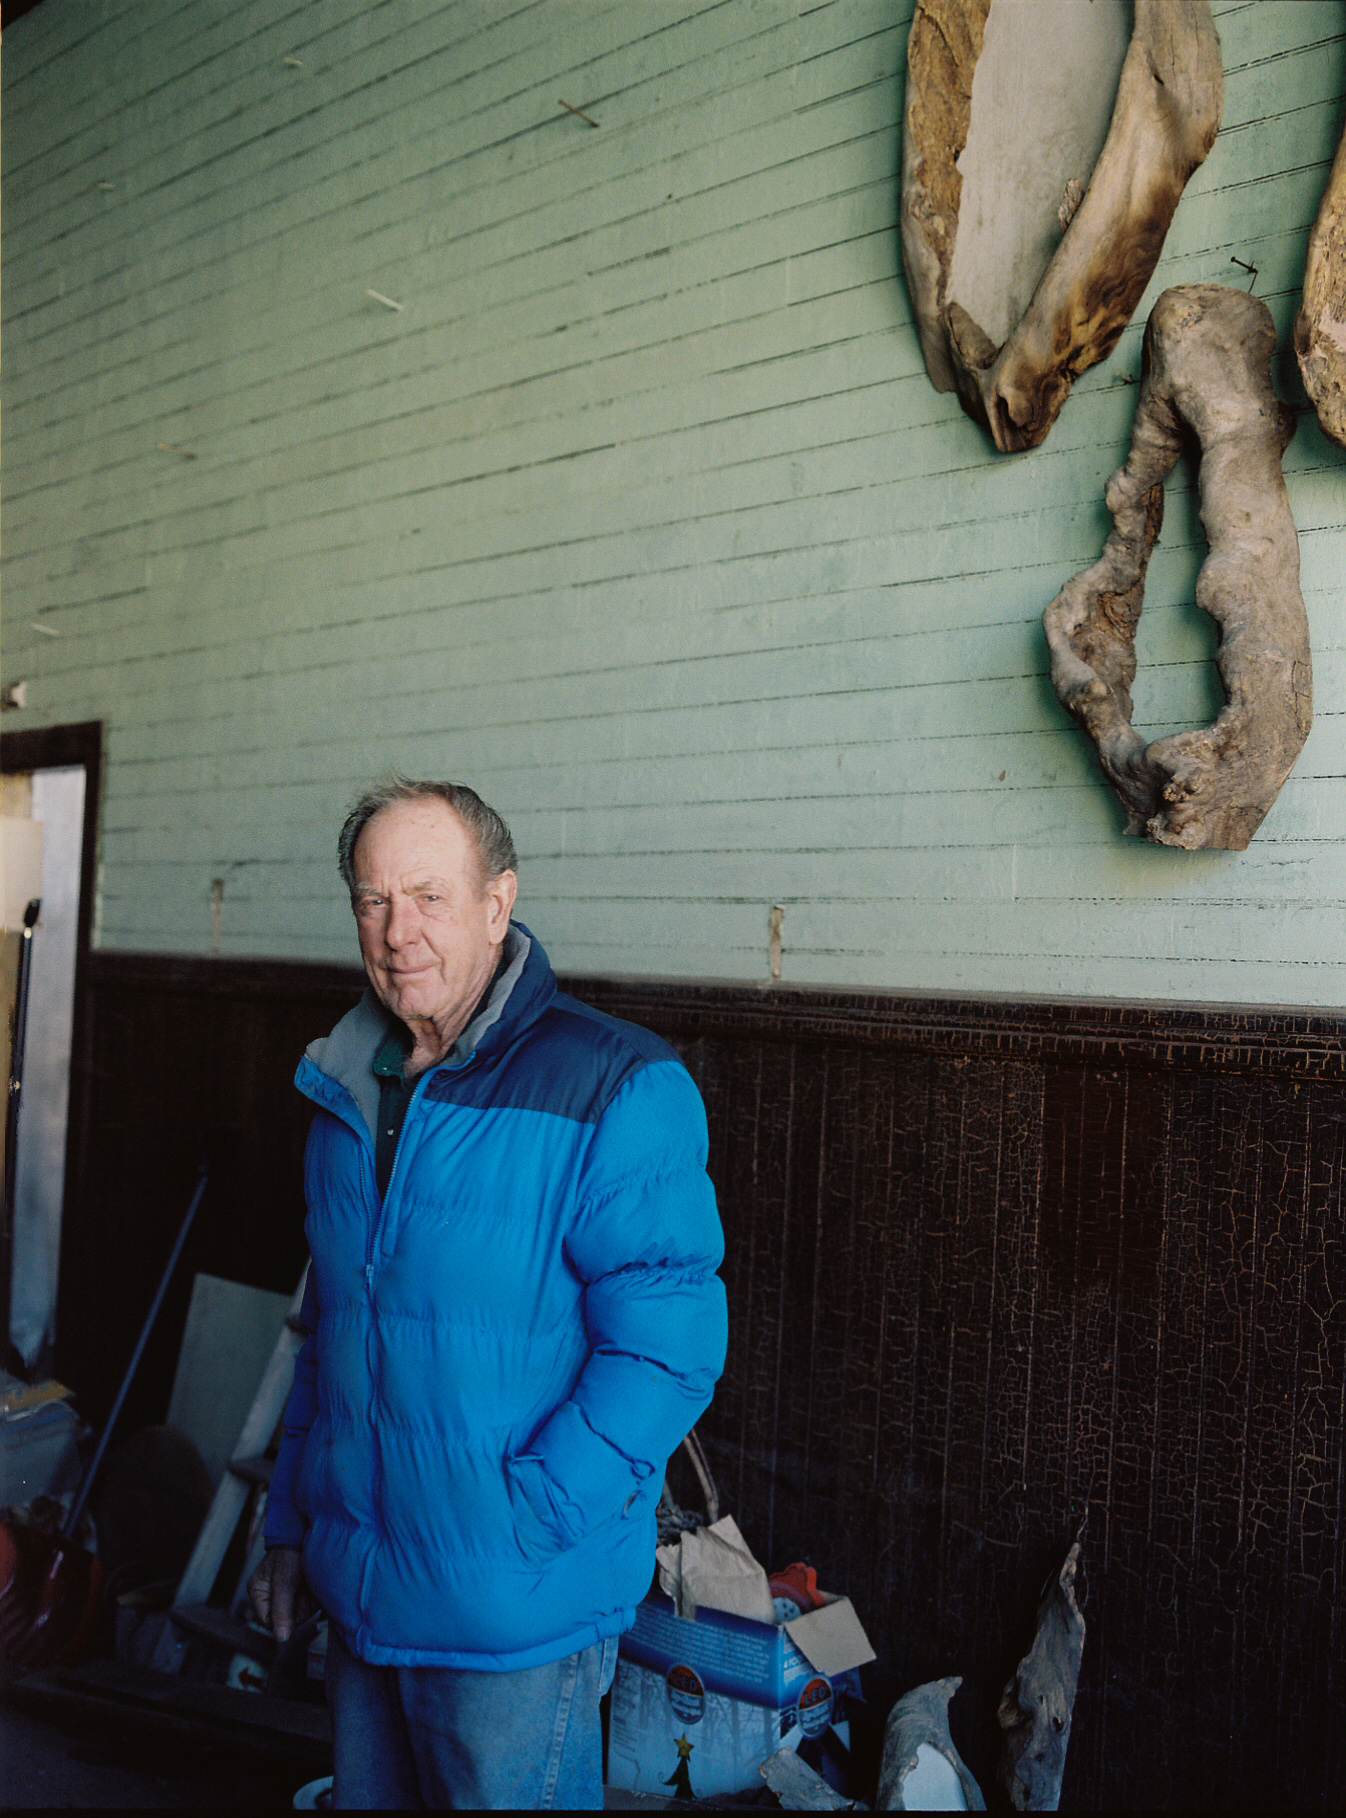 Billy, the man who owns Main Street in Eureka and keeps all the buildings maintained. Eureka, population 682. Winter 2010.